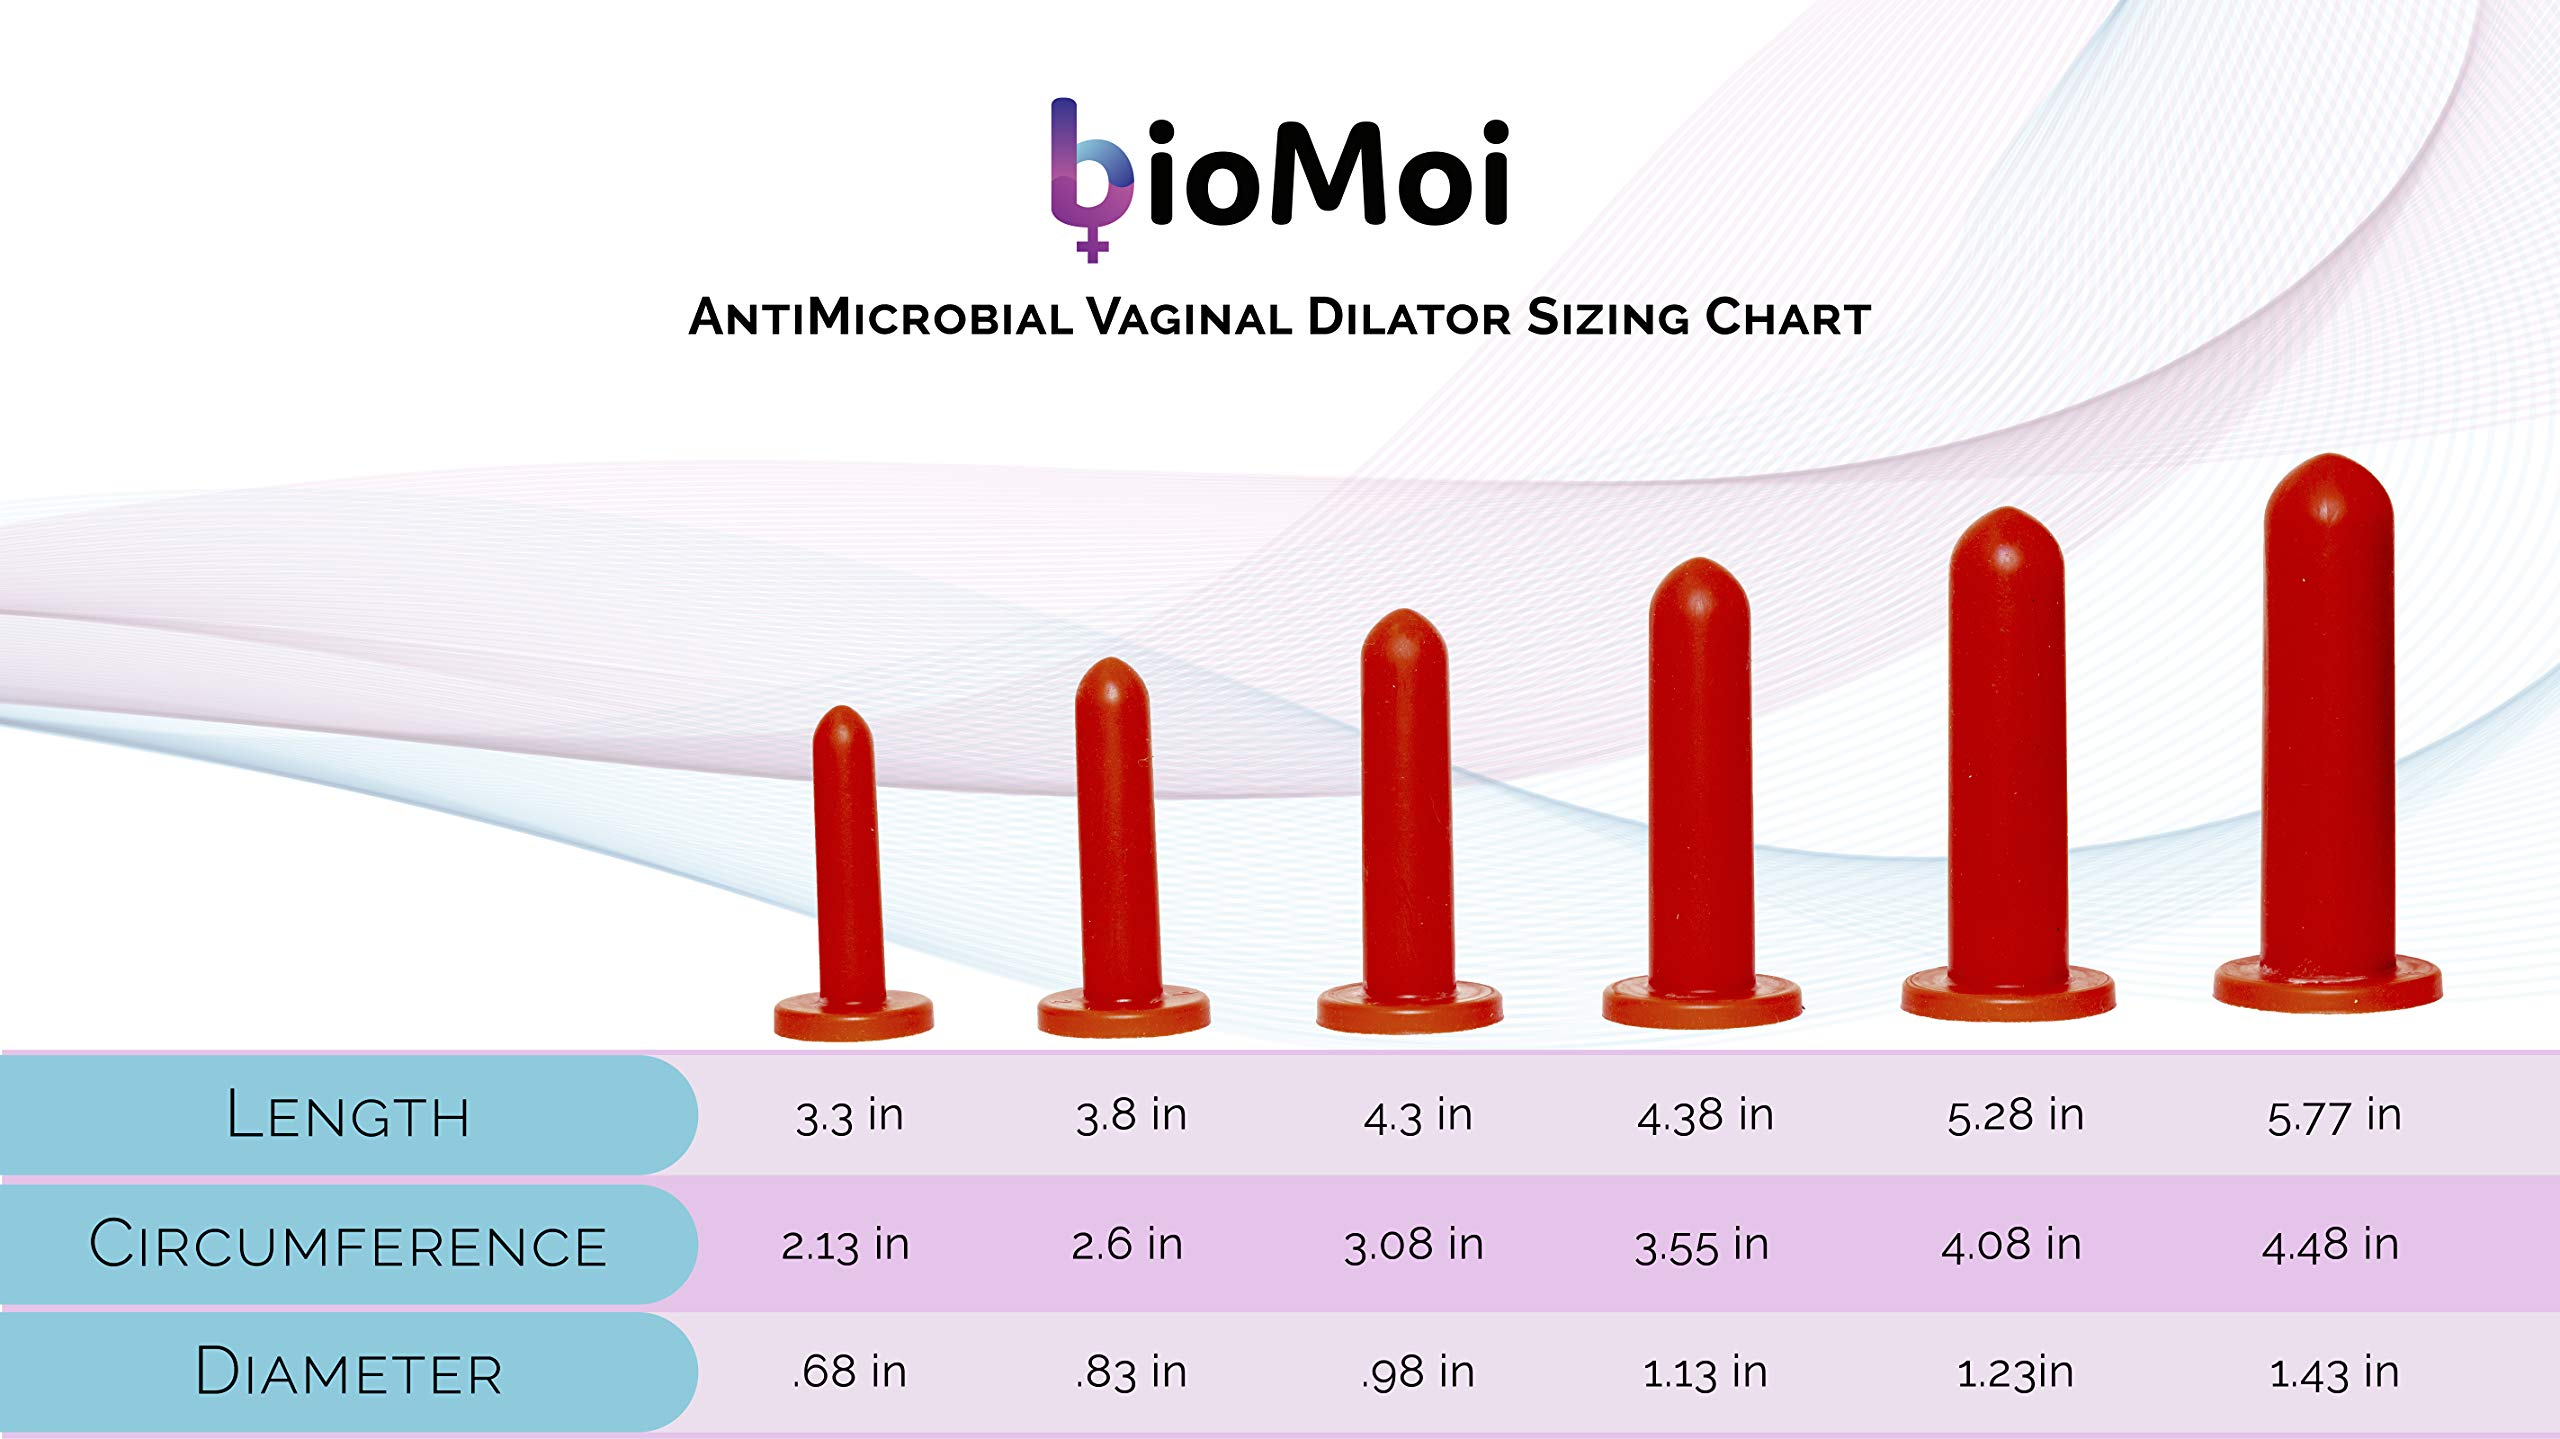 BioMoi's Silicone Vaginal Trainers with BioCote Protection (Full Set) by Bio Moi